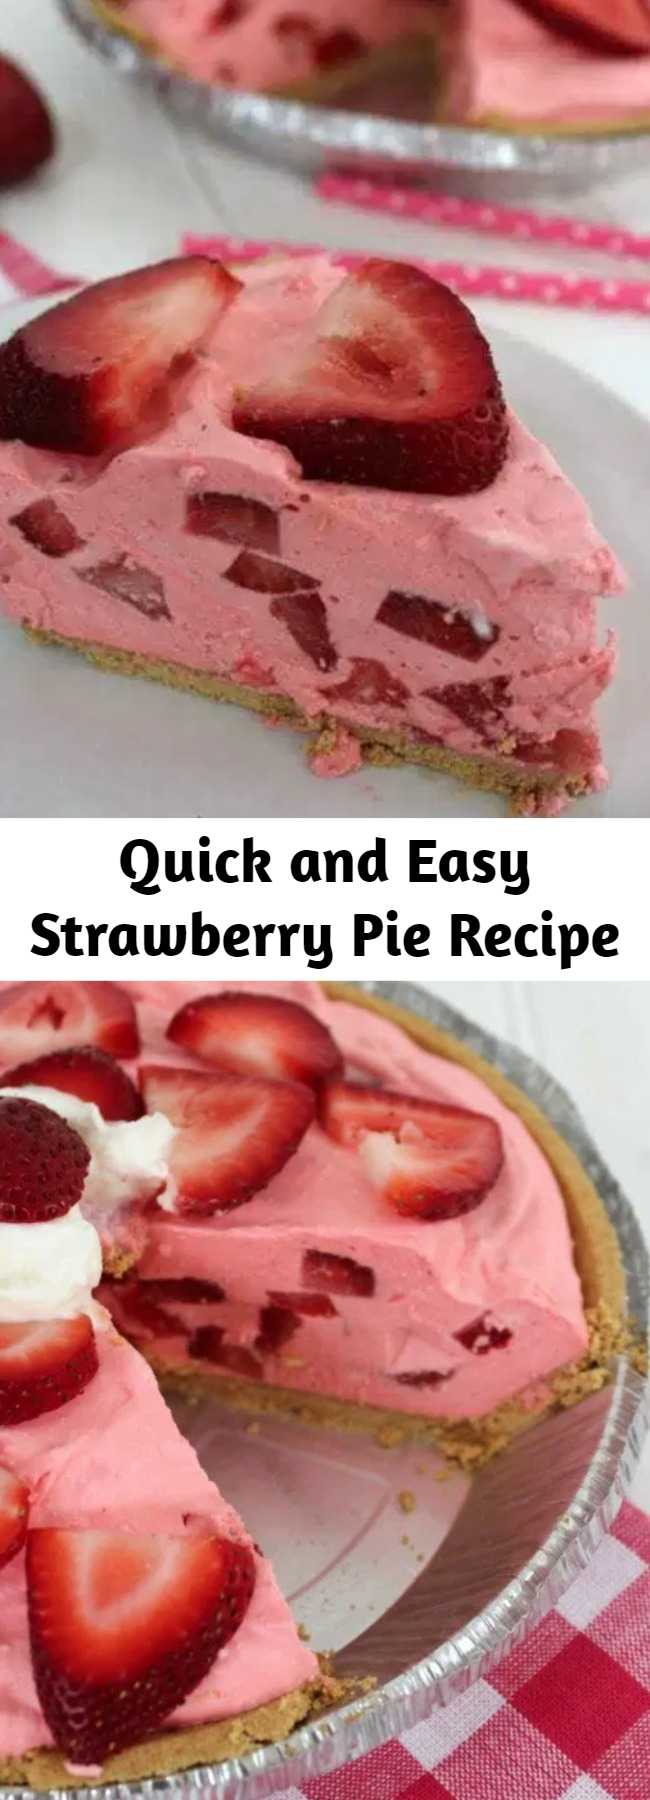 Quick and Easy Strawberry Pie Recipe - Super Simple and comes together quickly. Makes for a great summer BBQ dessert.